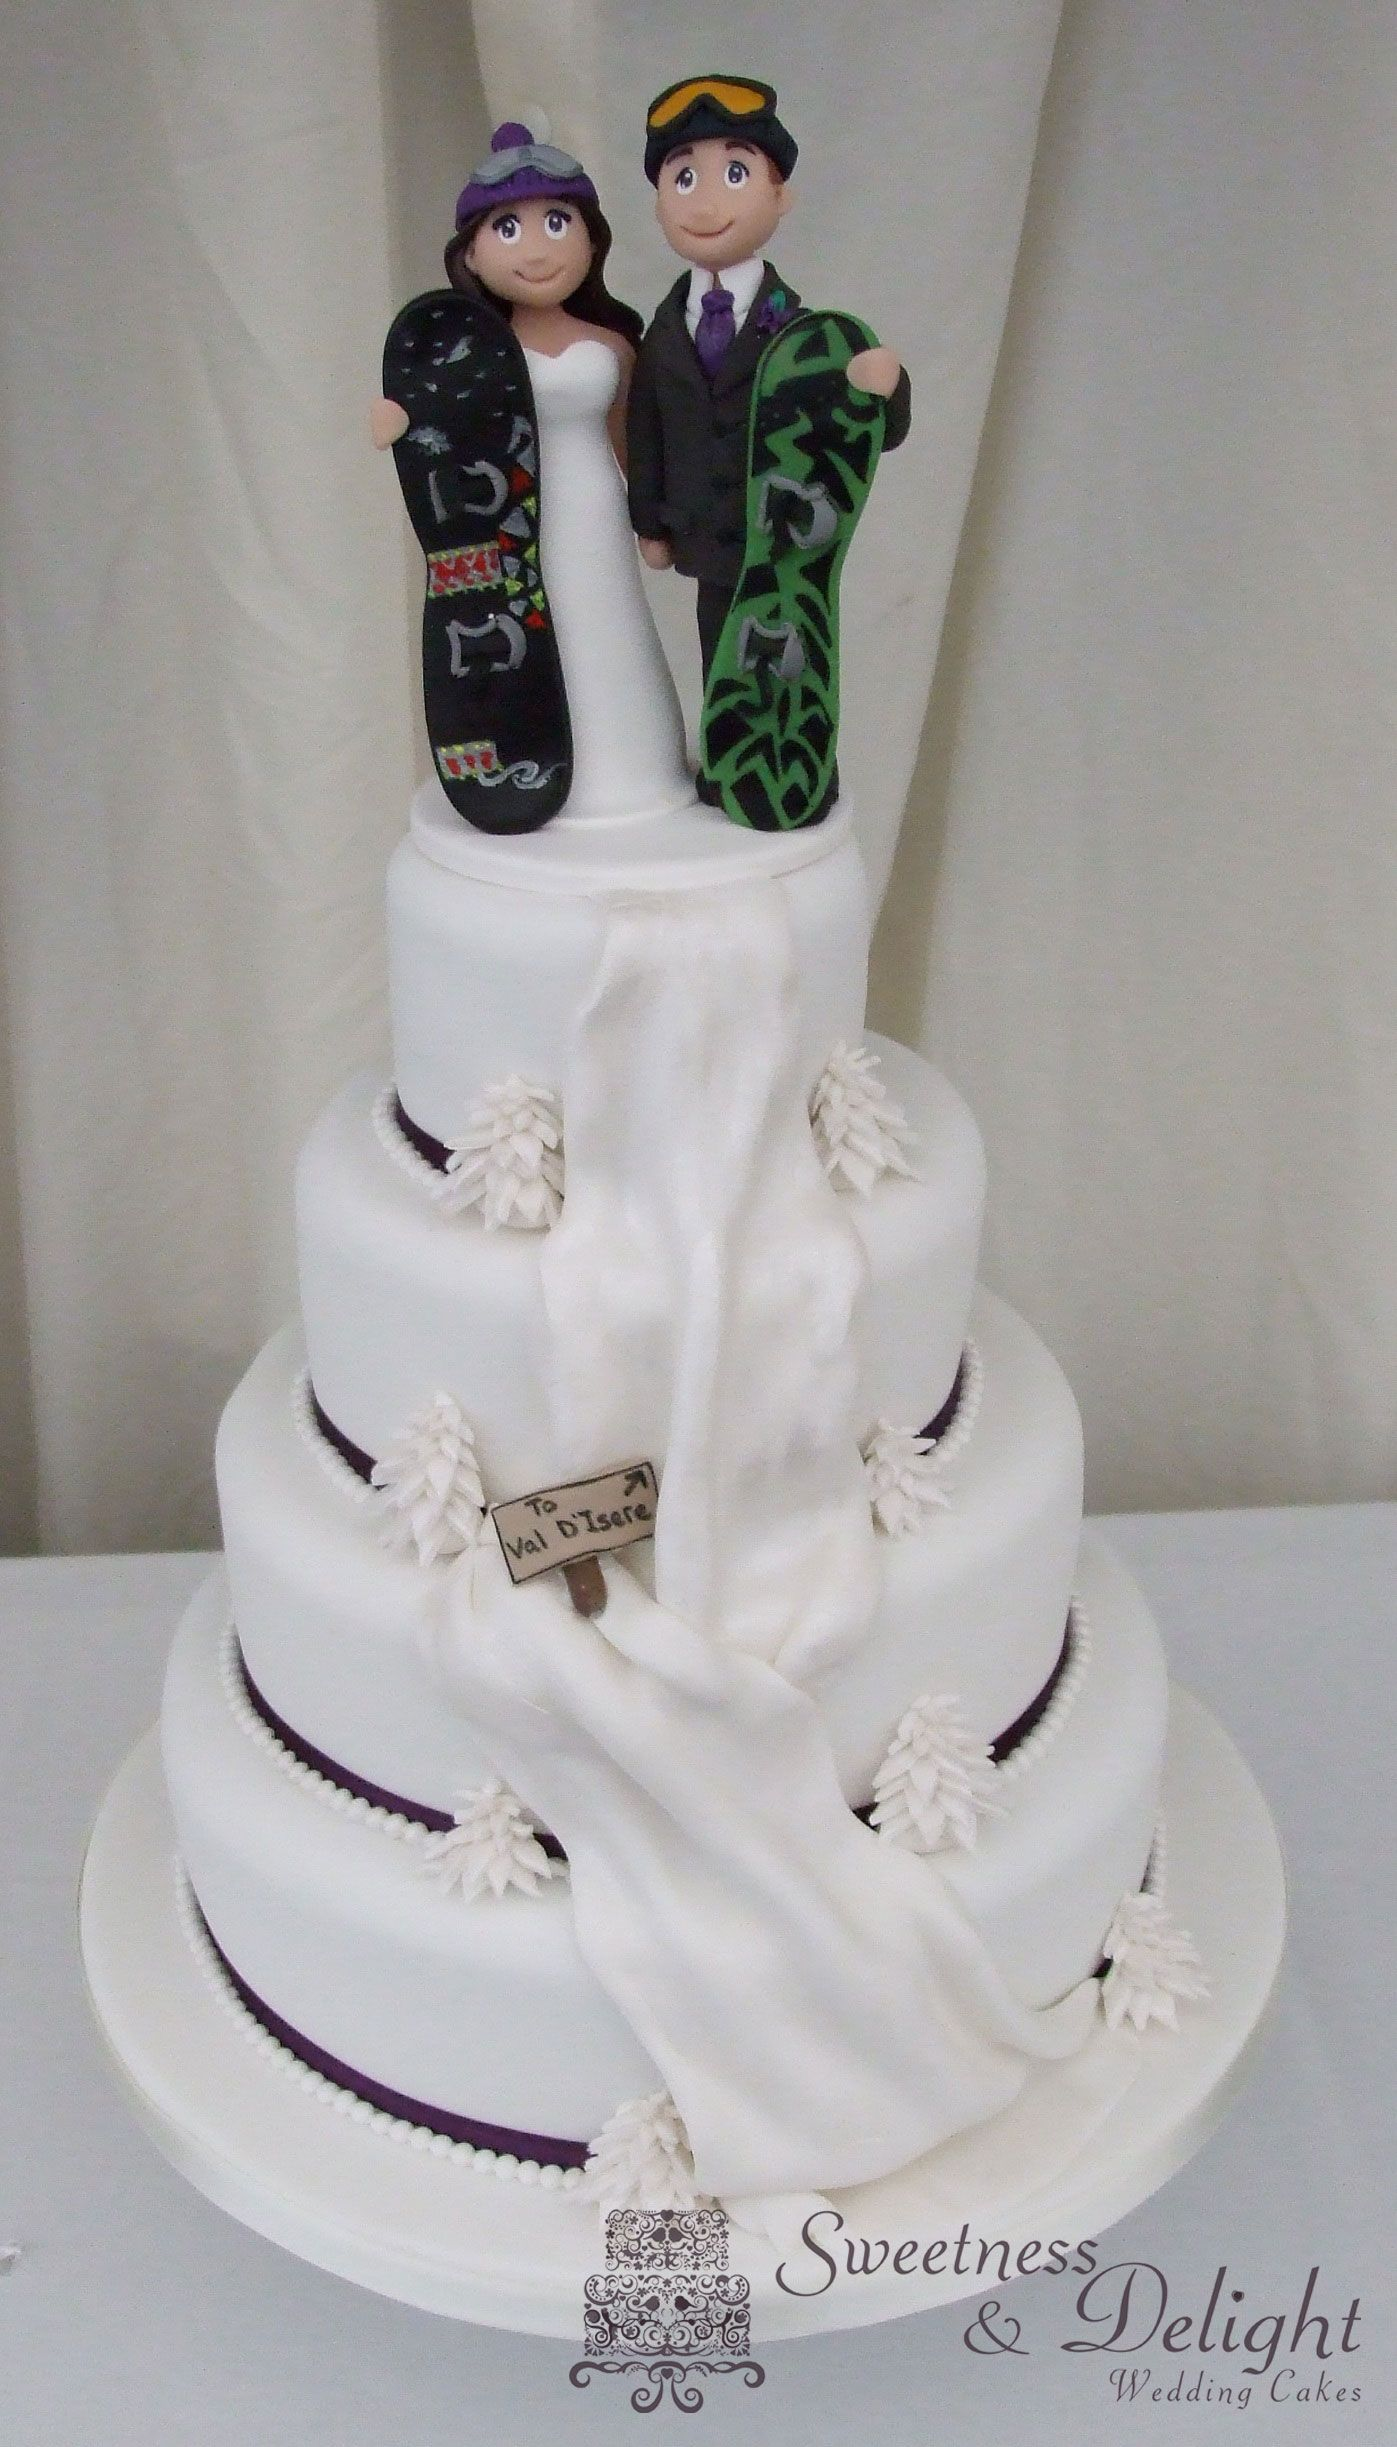 Snowboarding Themed Wedding Cake Repinned From Los Angeles County California Minister